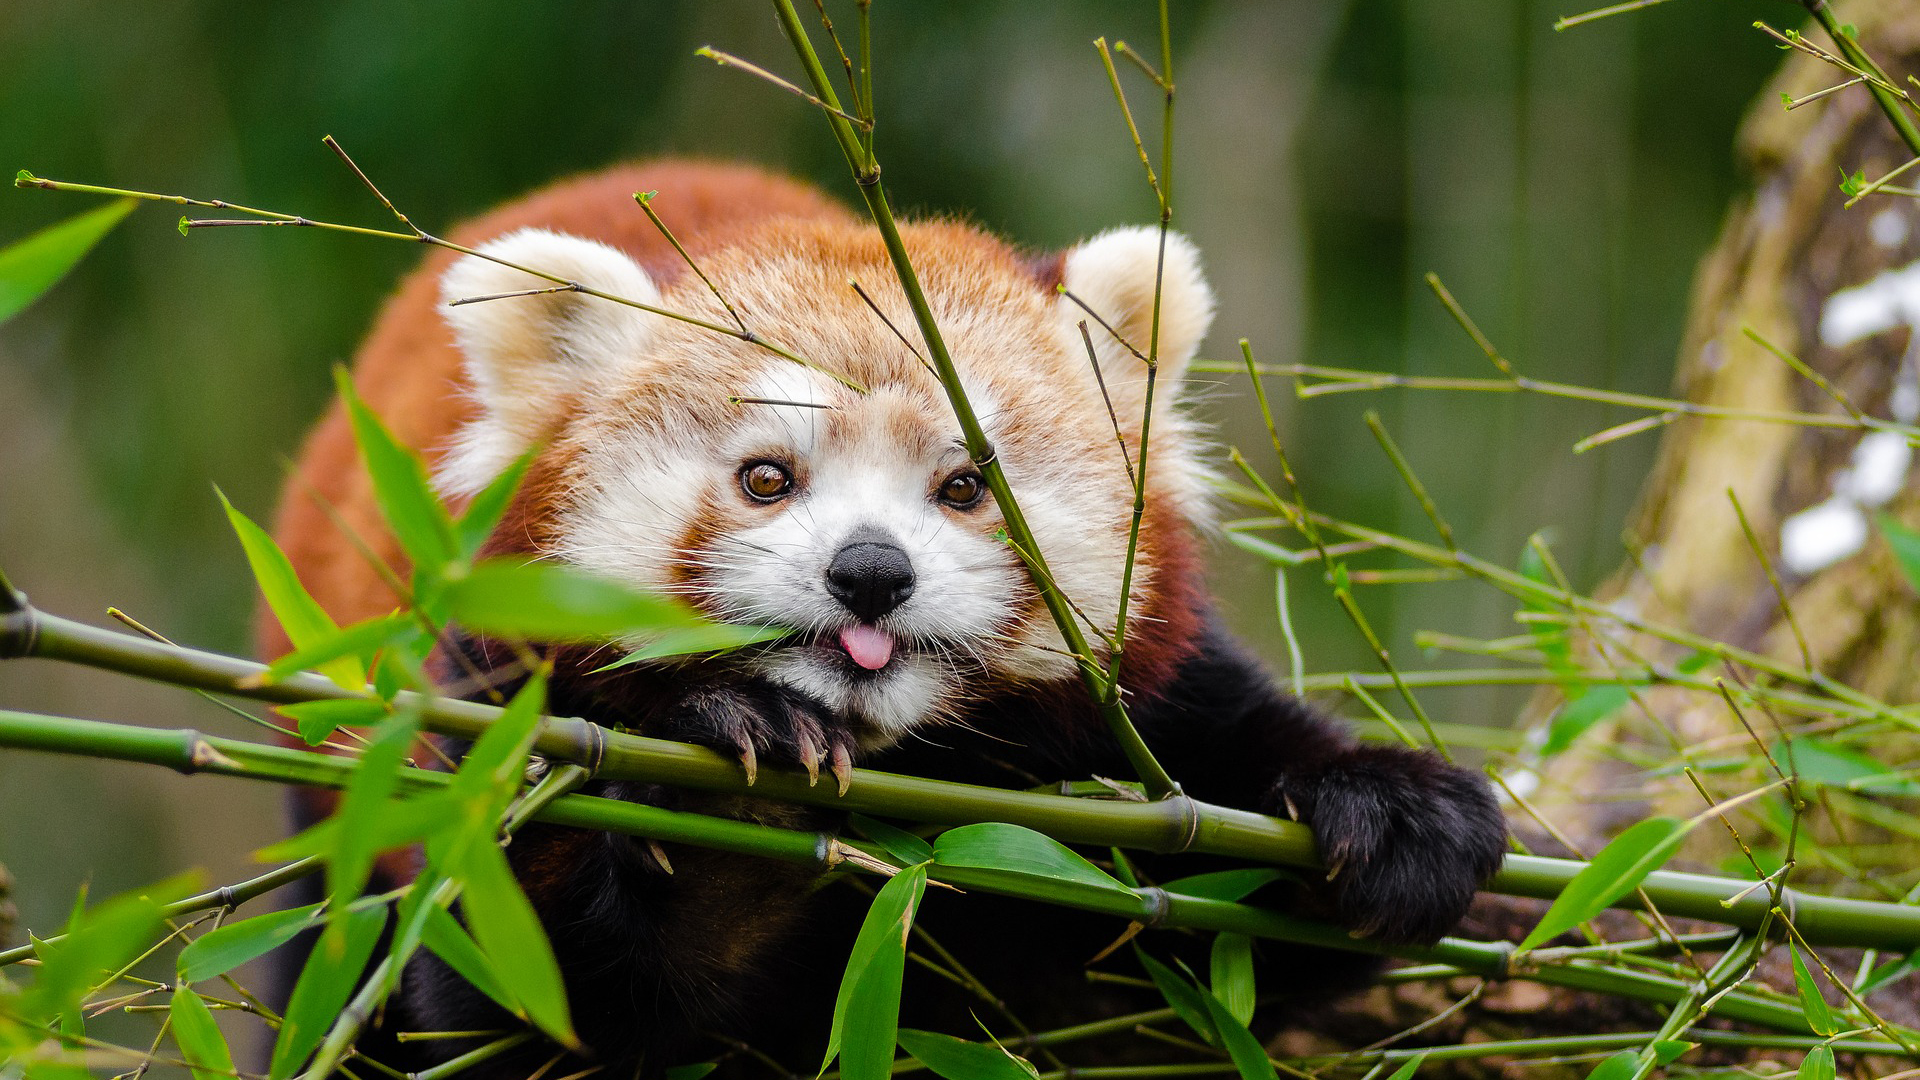 Red Panda | Basic Facts About Red Panda